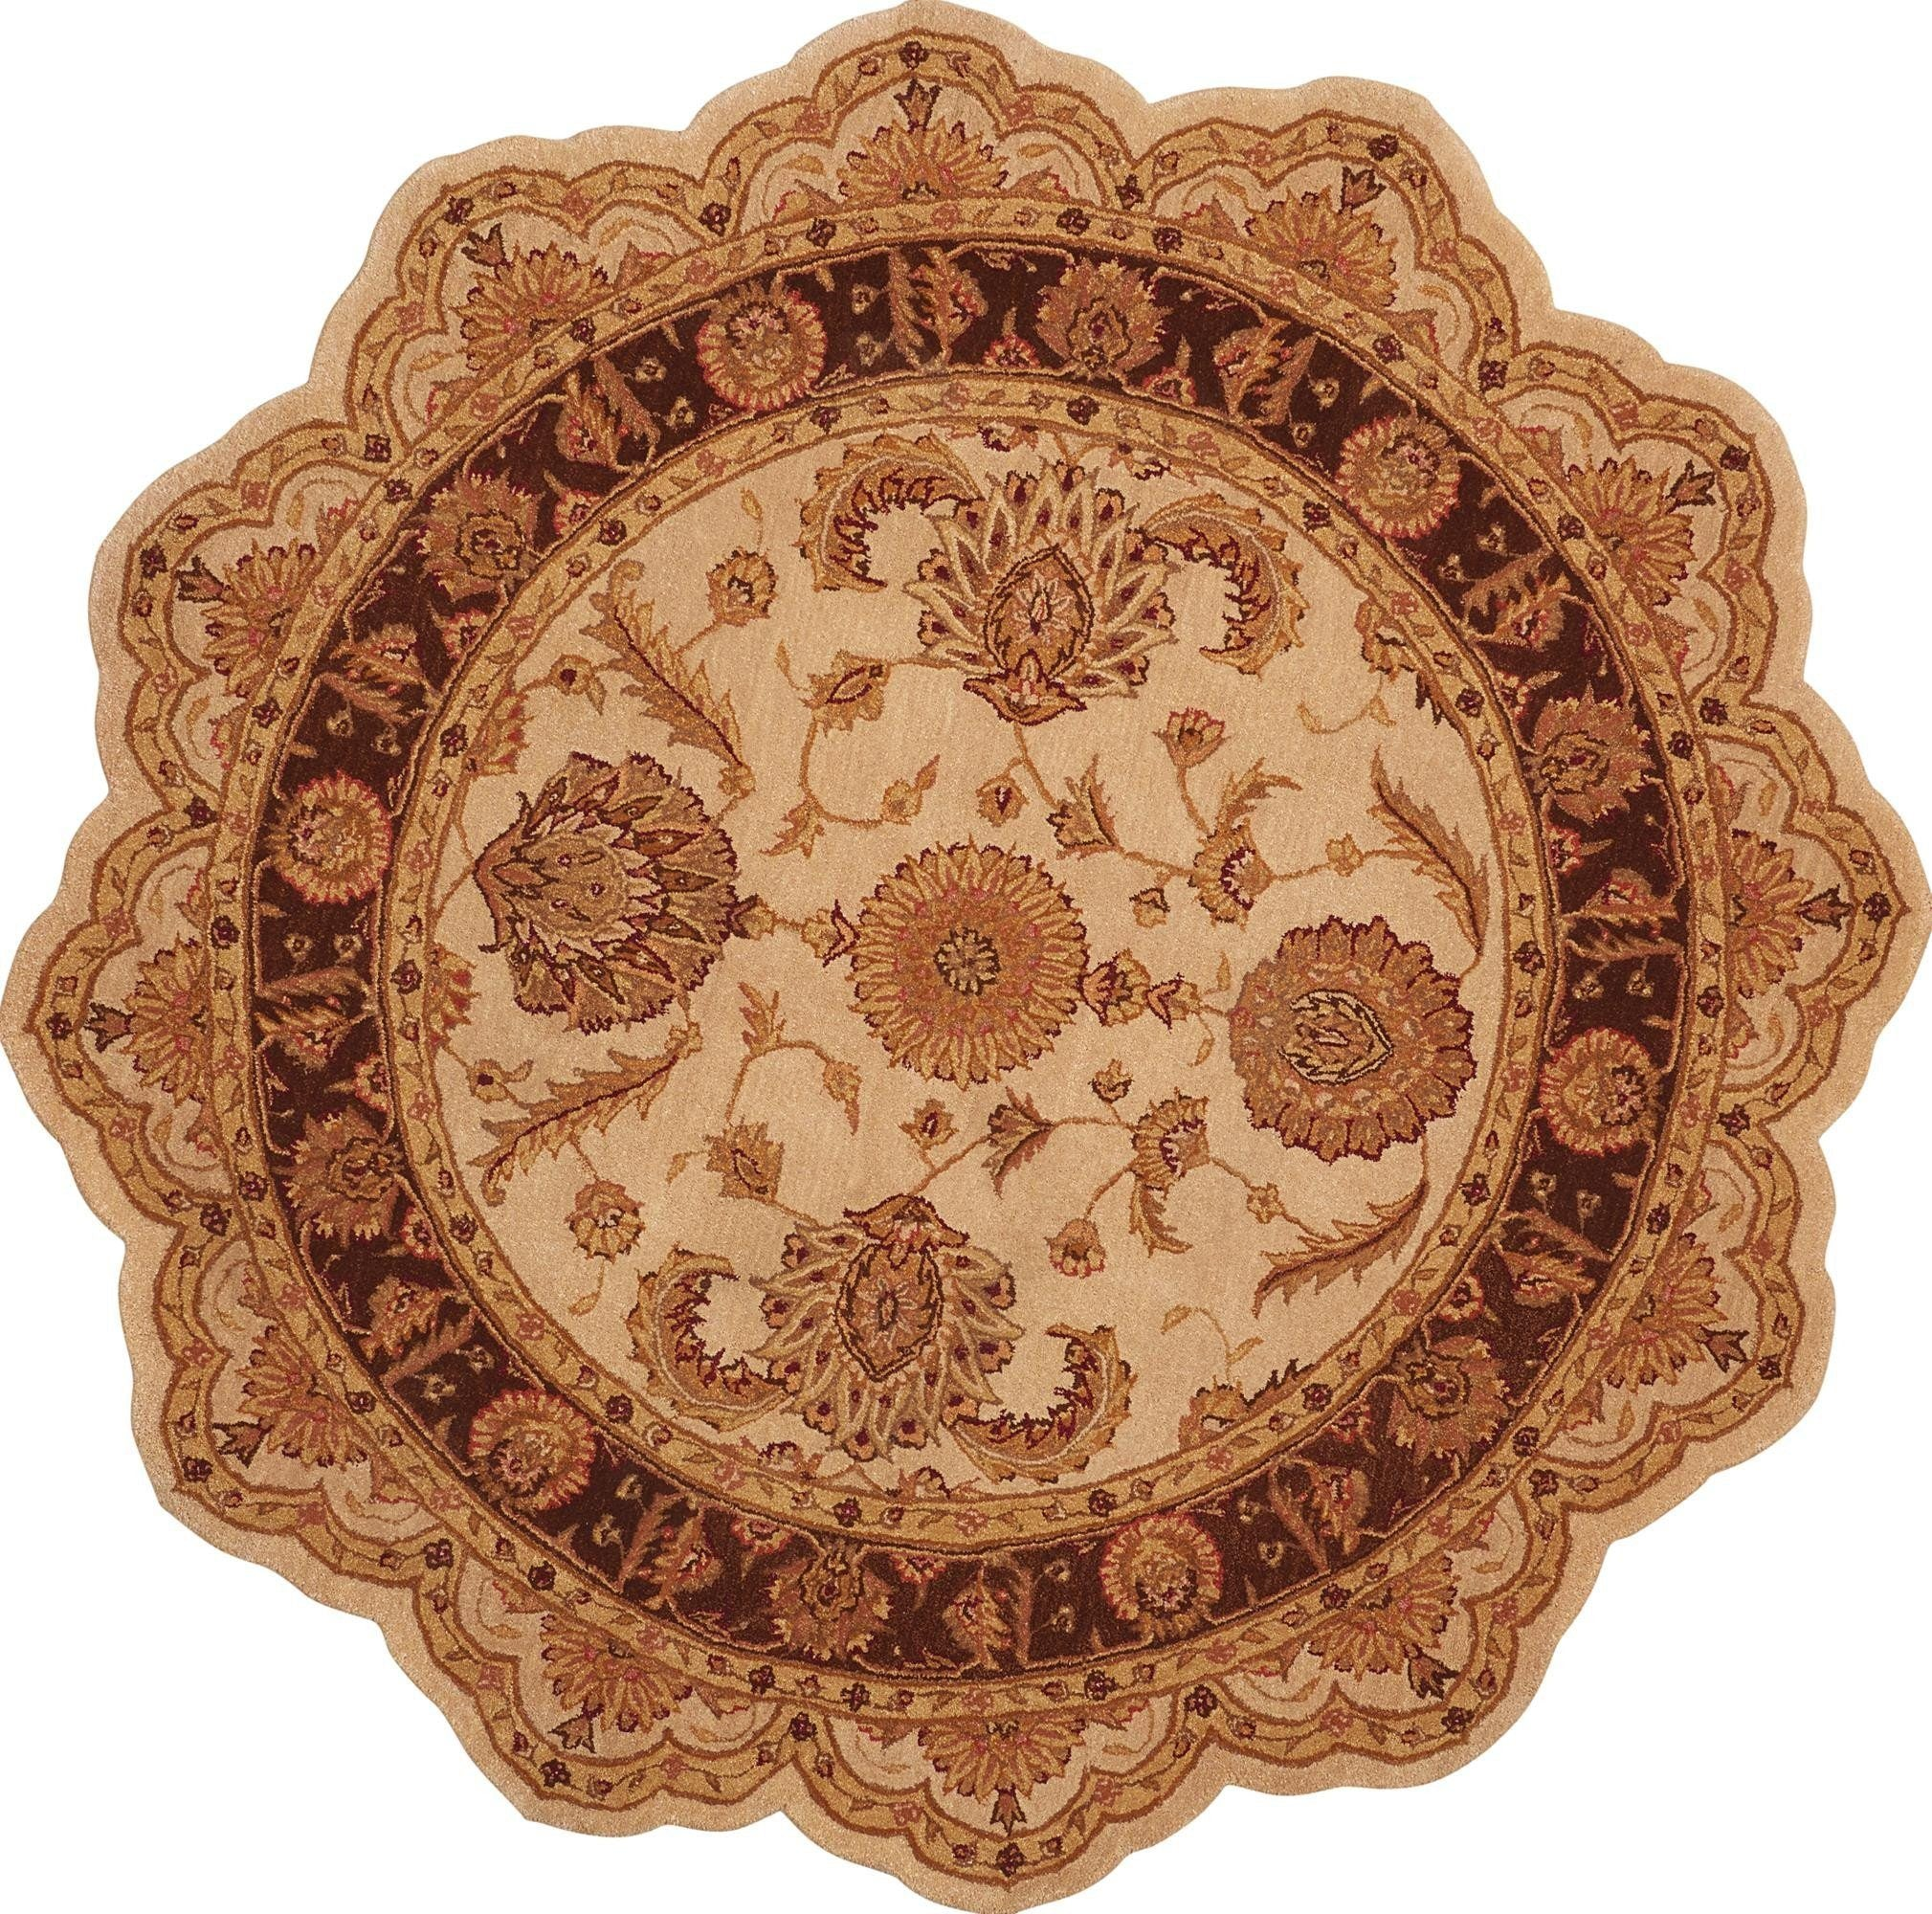 Heritage Hall Beige Rug - 2 Size and Shape Options Rugs Nourison 6' Scalloped Round